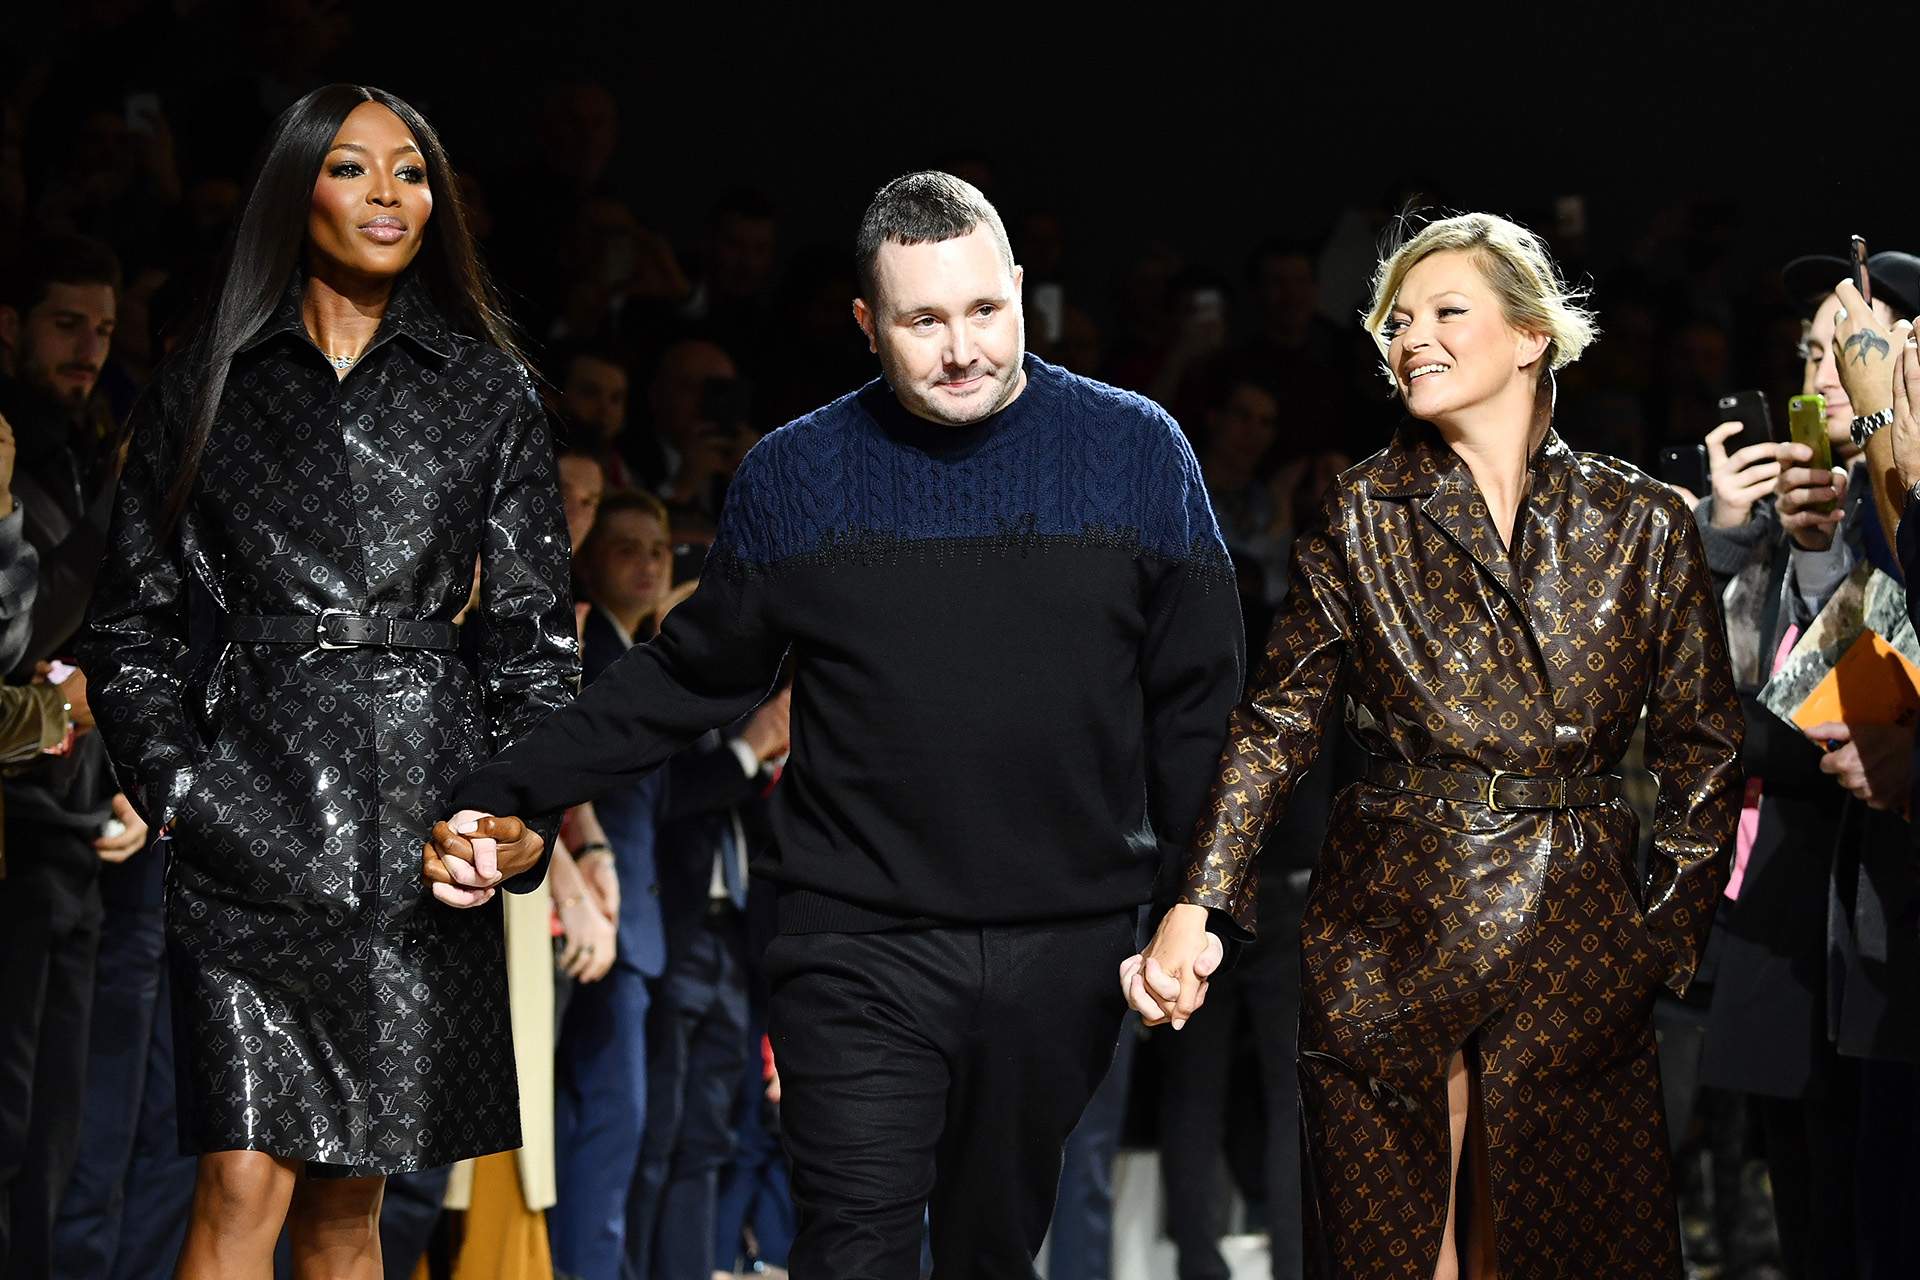 PARIS, FRANCE - JANUARY 18: (L-R) Naomi Campbell, Kim Jones and Kate Moss walk the runway during the Louis Vuitton Menswear Fall/Winter 2018-2019 show as part of Paris Fashion Week on January 18, 2018 in Paris, France. (Photo by Pascal Le Segretain/Getty Images)